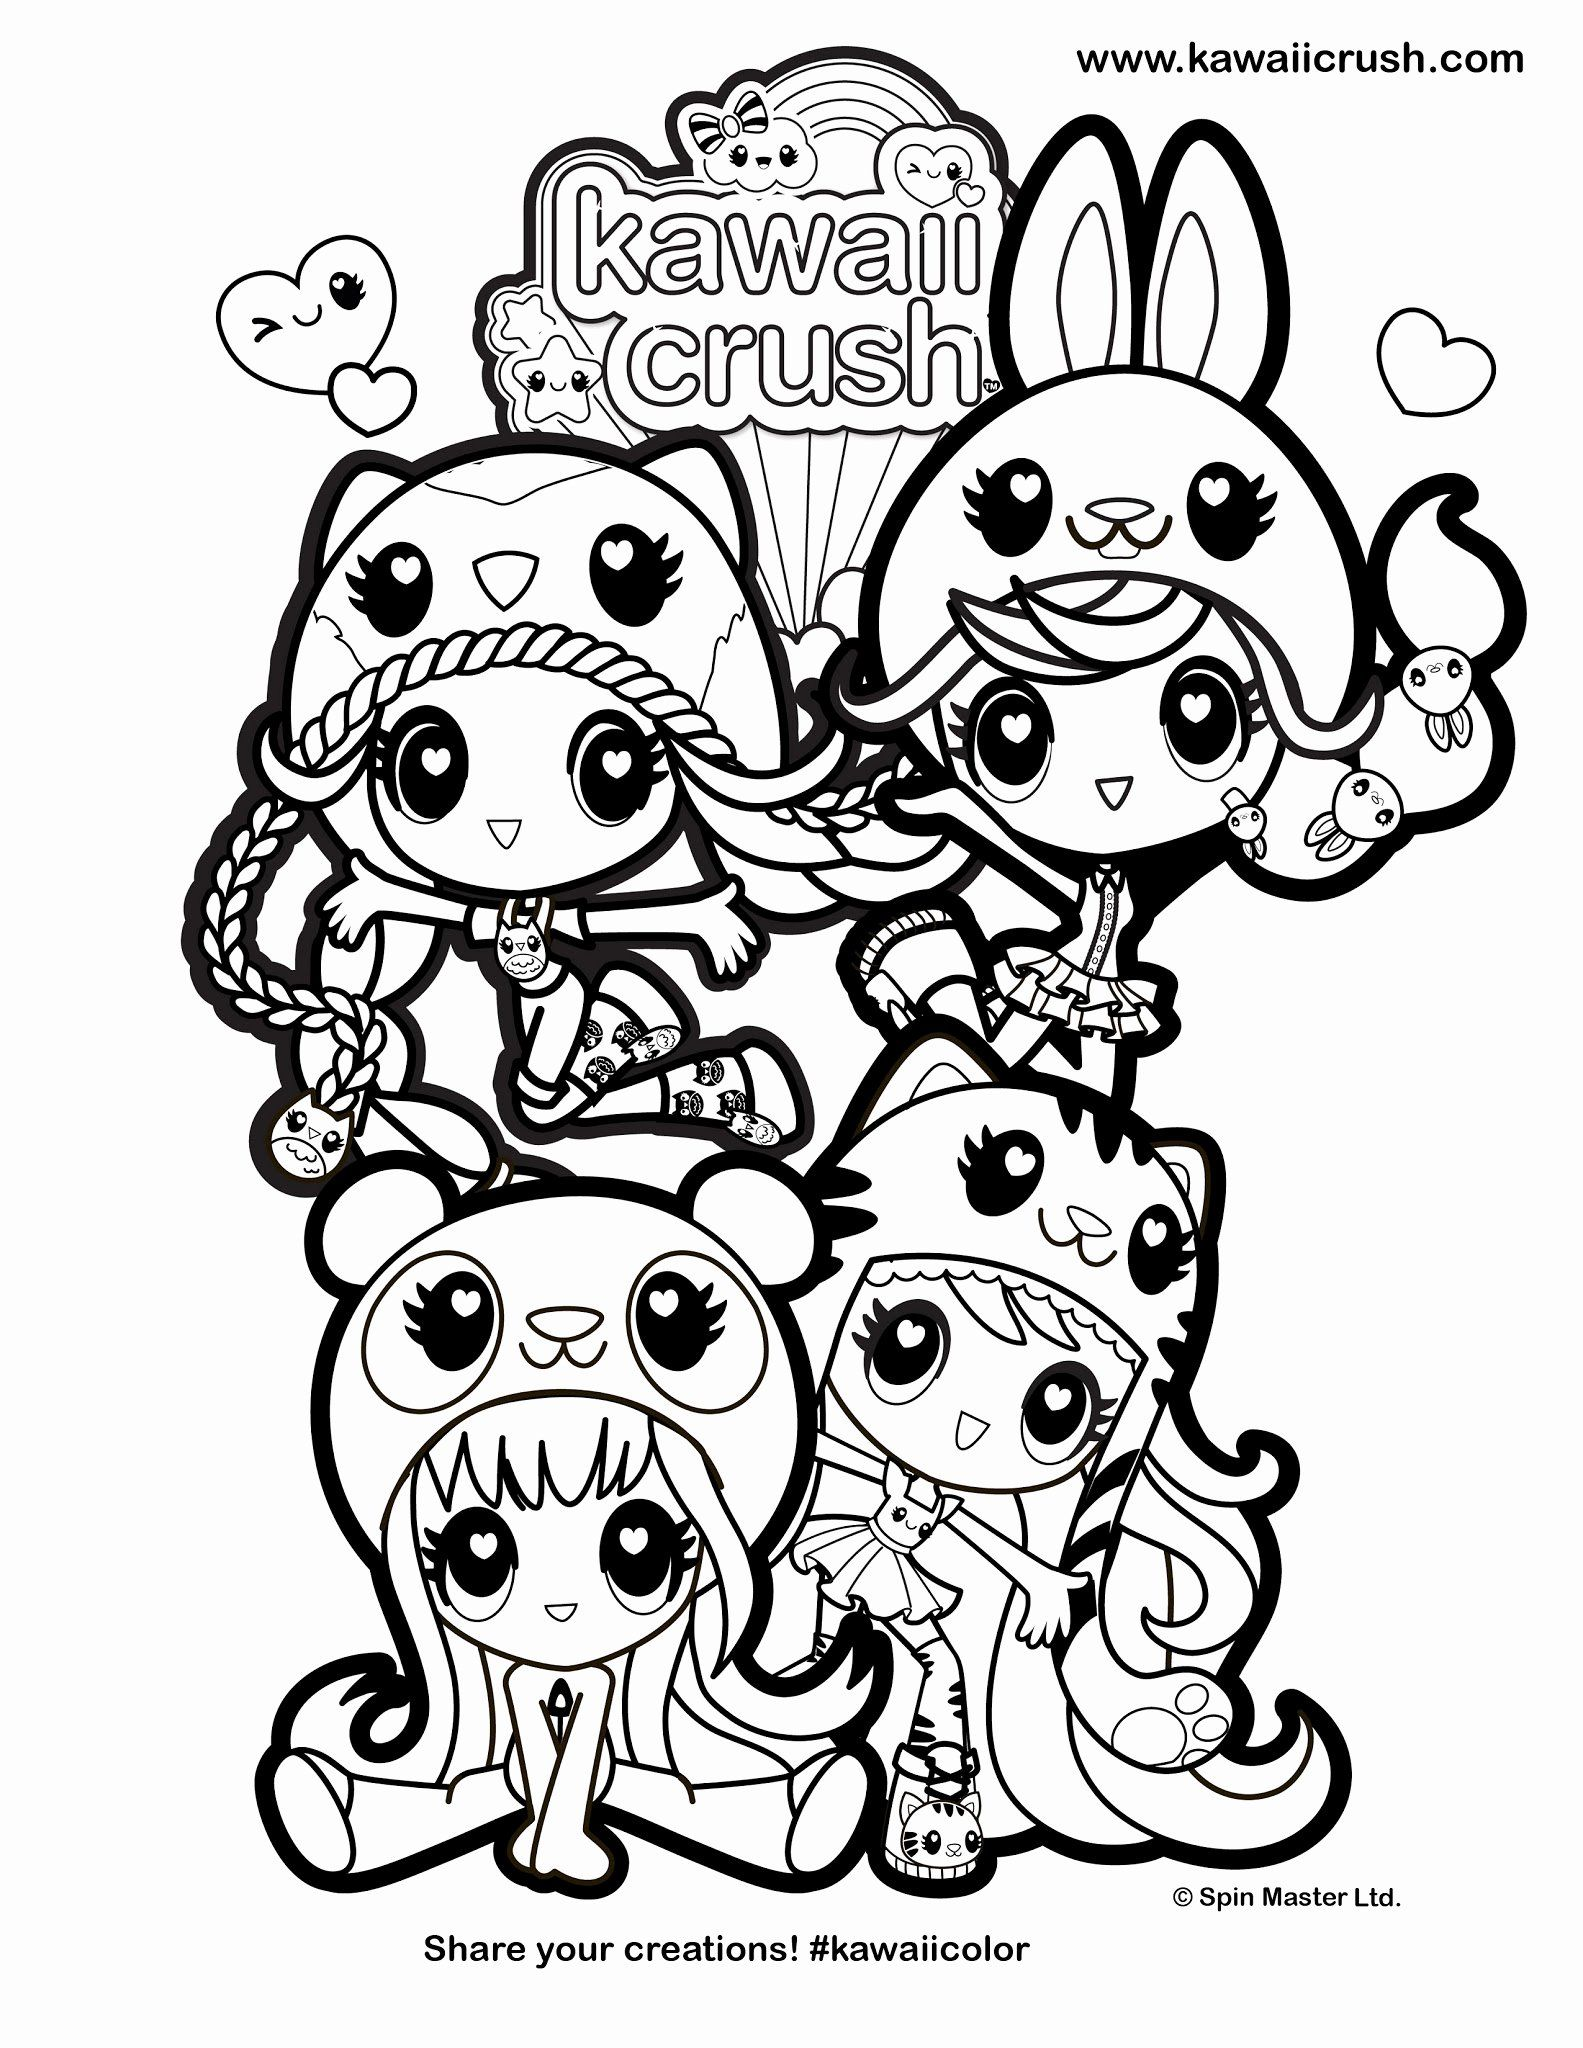 Anime Coloring Page Kawaii Beautiful Cute Anime Coloring Pages Fresh Coloring Pages Coloring M Disney Coloring Pages Cute Coloring Pages Unicorn Coloring Pages